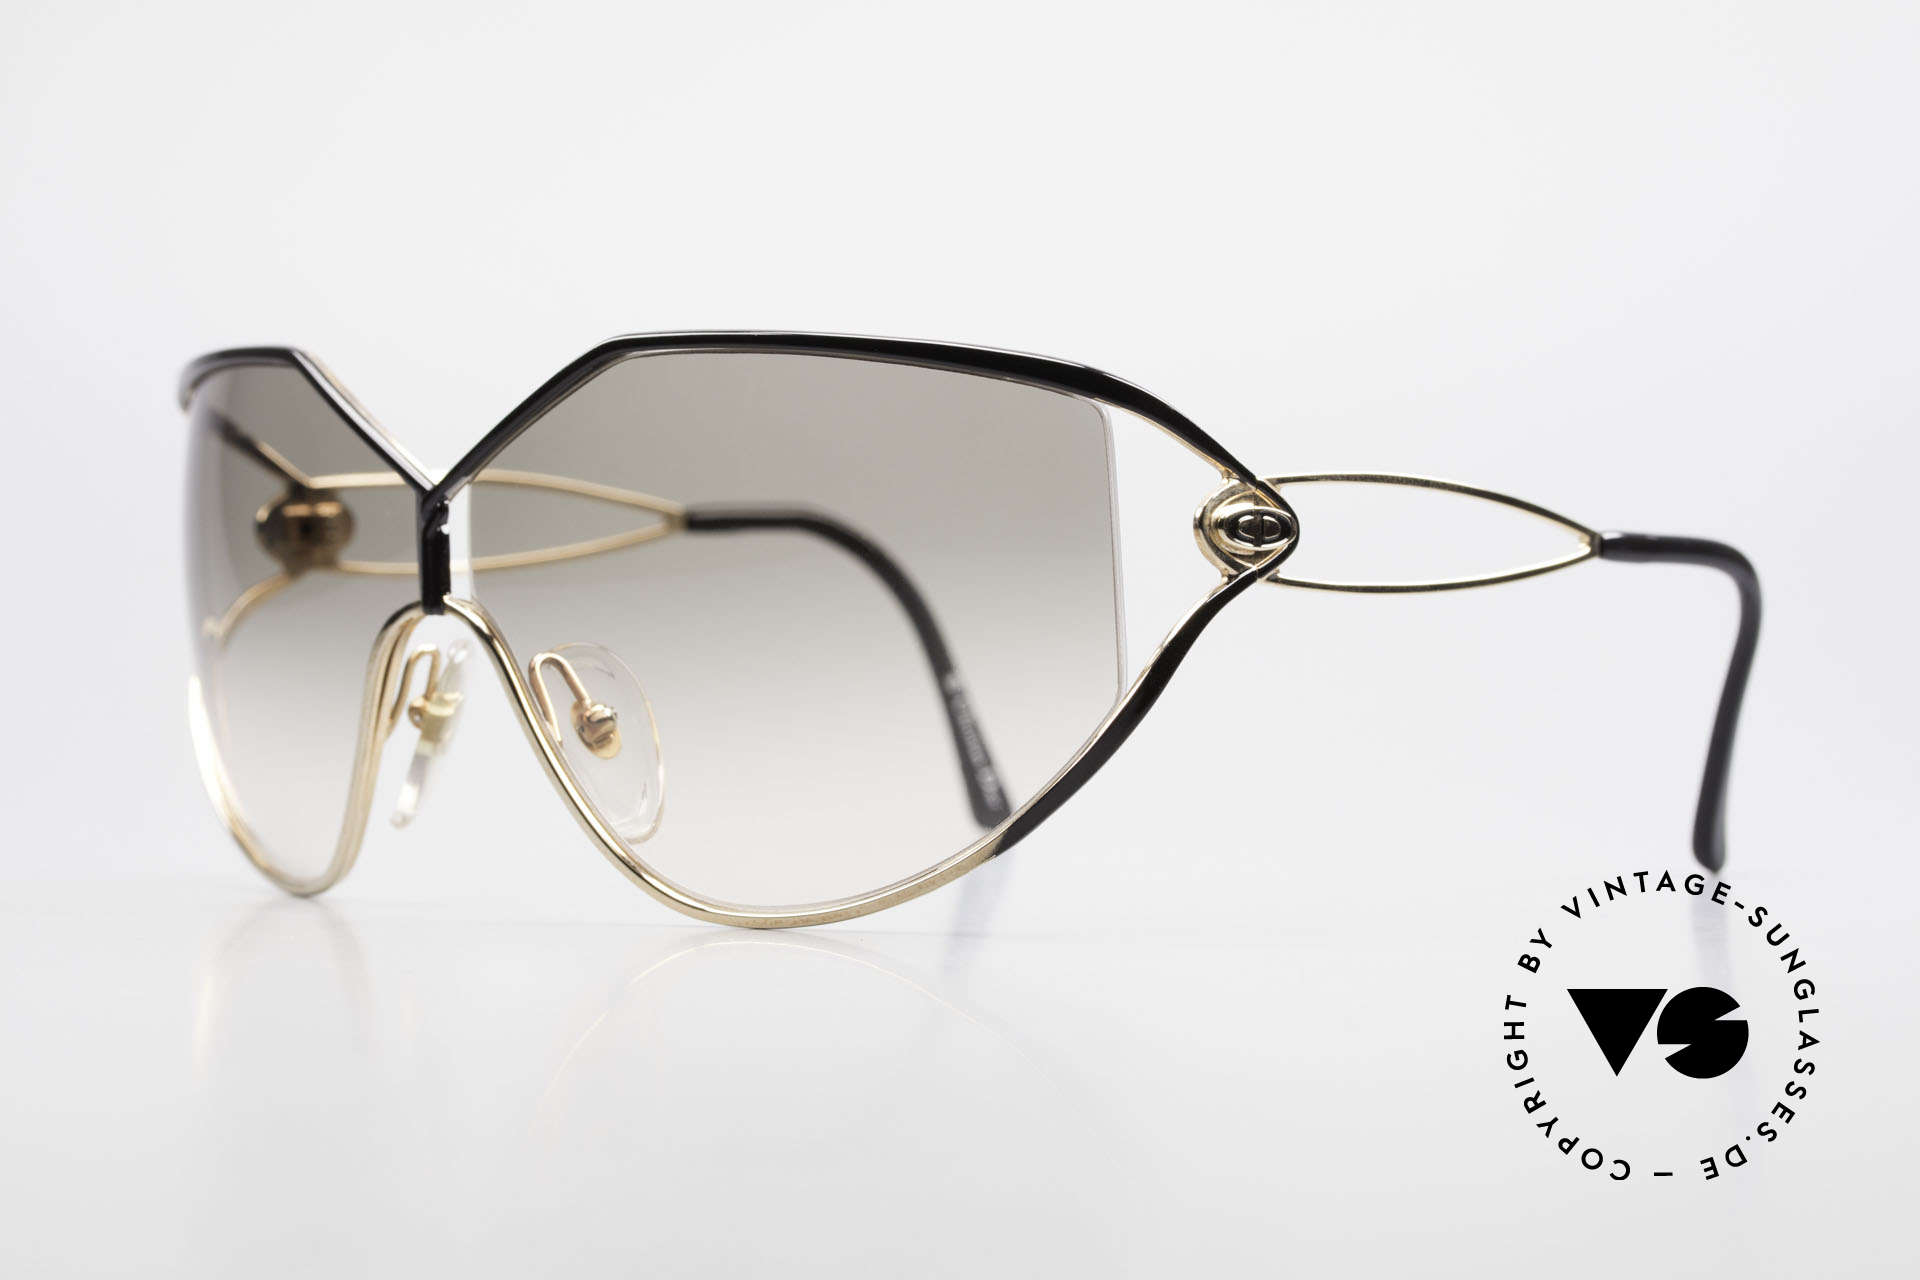 Christian Dior 2345 Designer Sunglasses Ladies, front: gold-plated & black finished (très chic), Made for Women